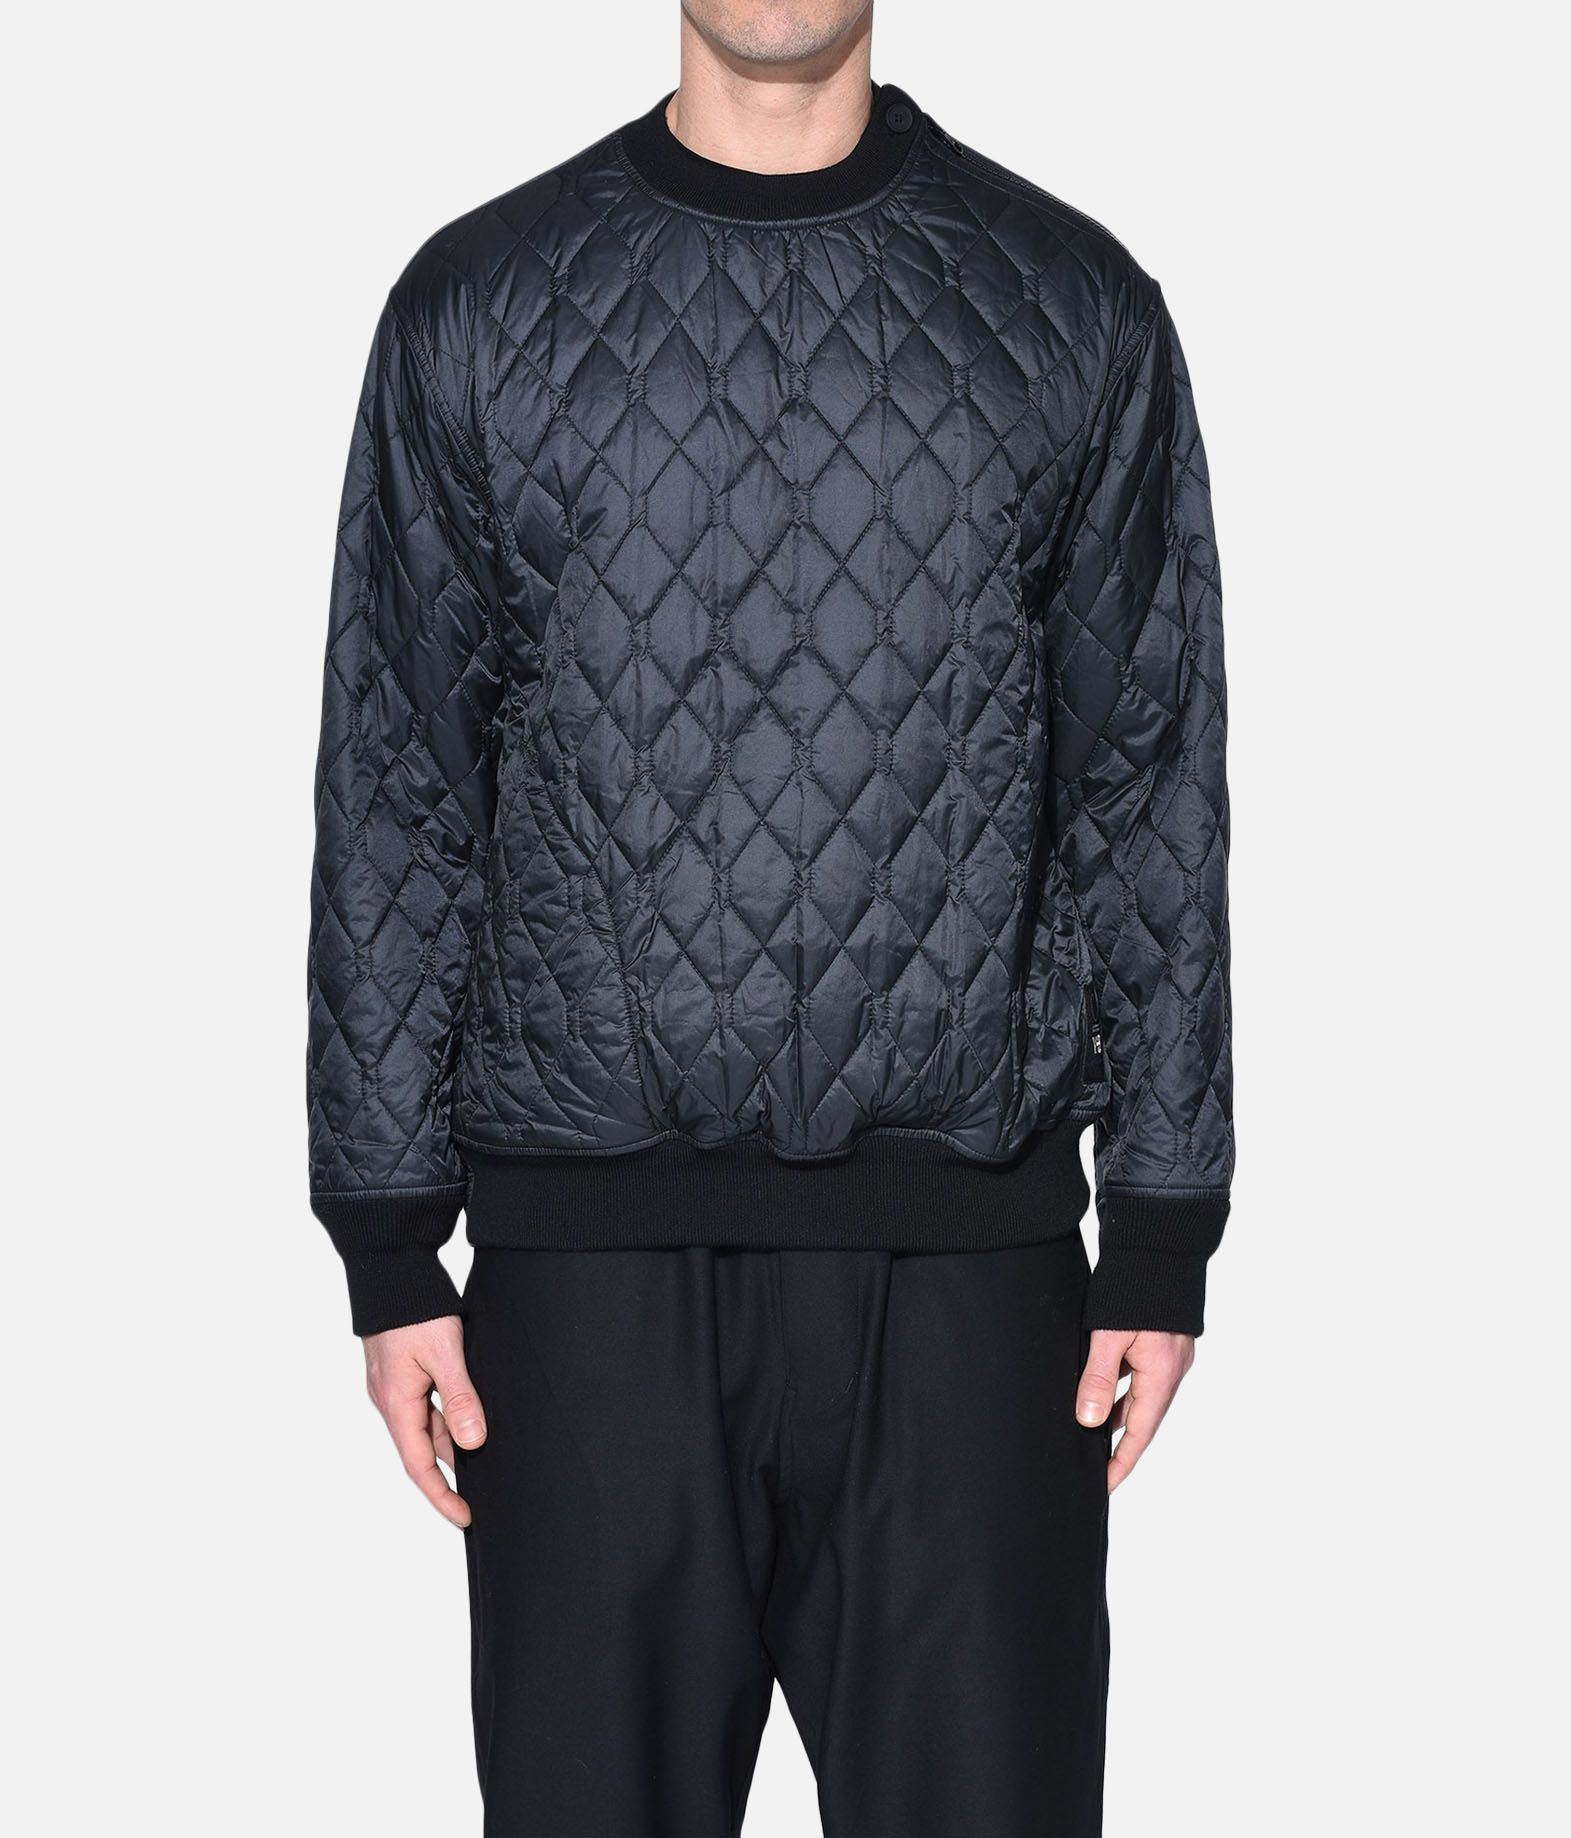 Y-3 Y-3 Quilted Sweater スウェット メンズ r